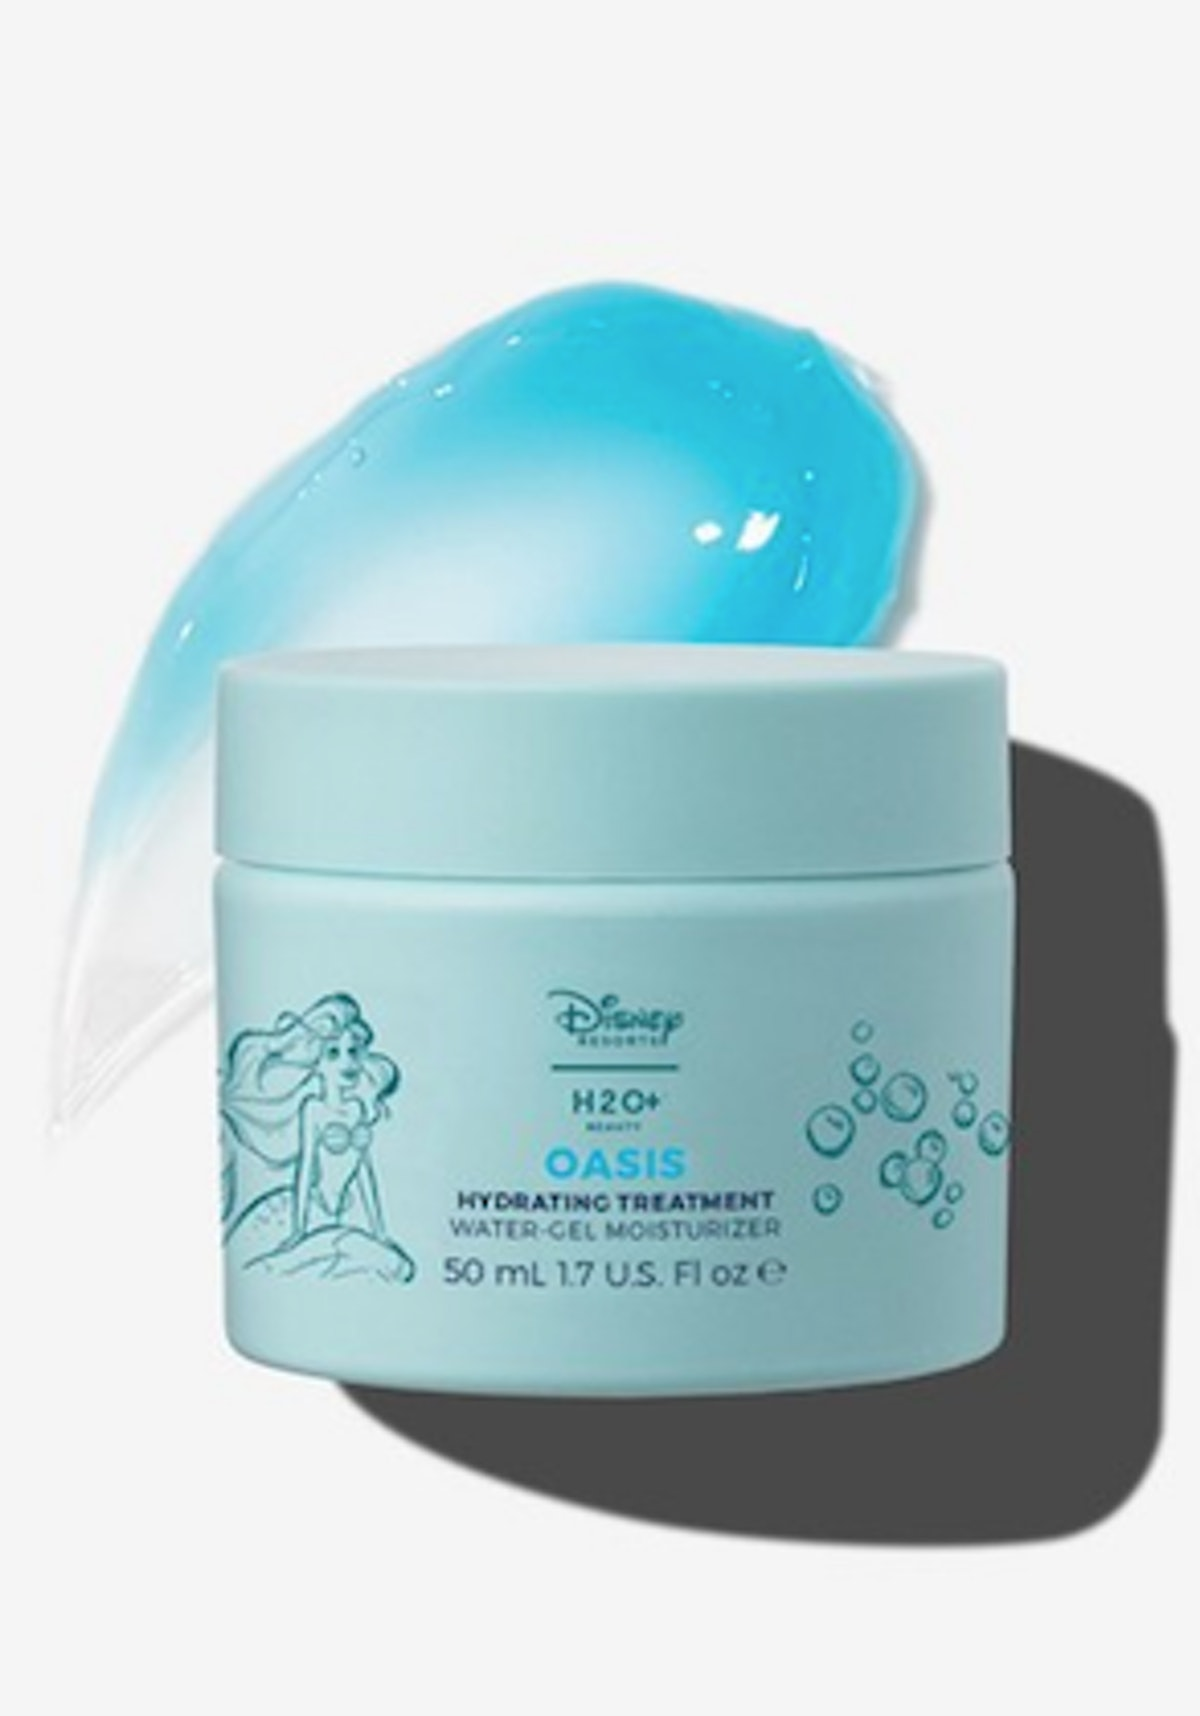 OASIS HYDRATING TREATMENT